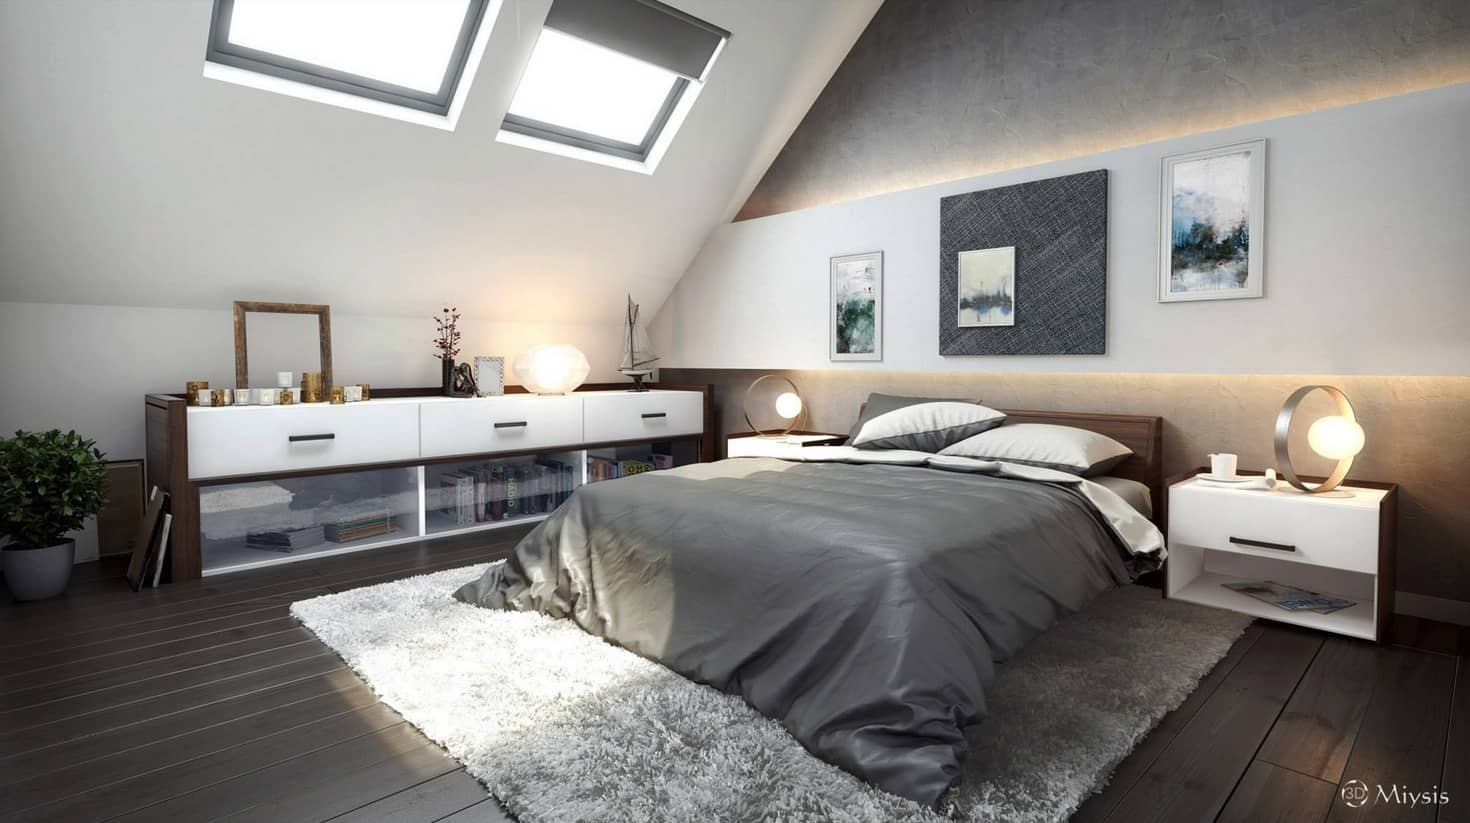 decorating attic rooms download decorating an attic bedroom widaus home design home decor ideas